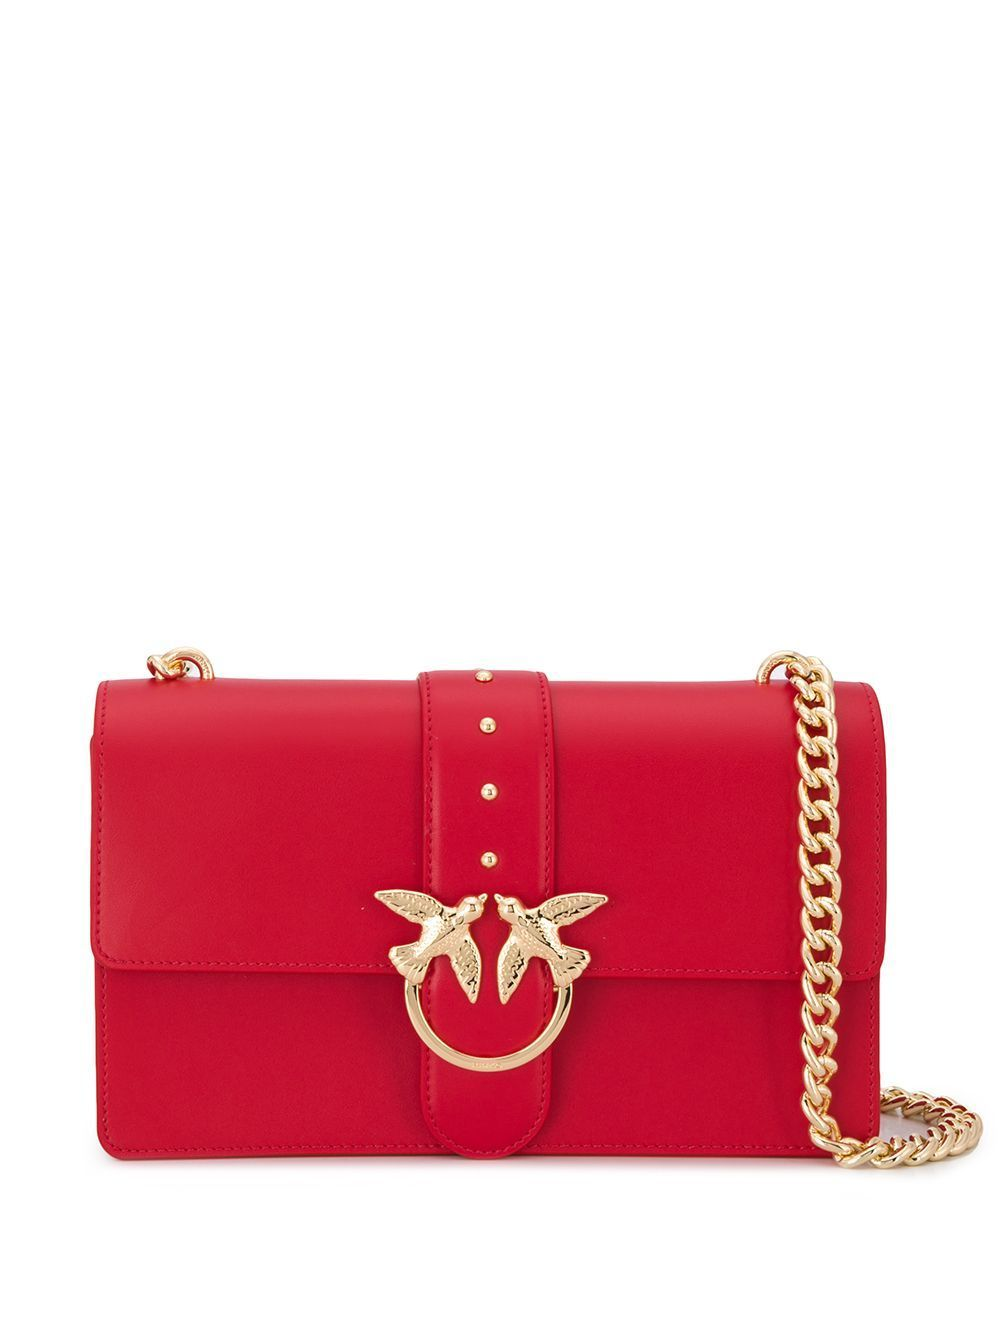 PINKO WOMEN'S 1P21KMY5FFR24 RED LEATHER SHOULDER BAG